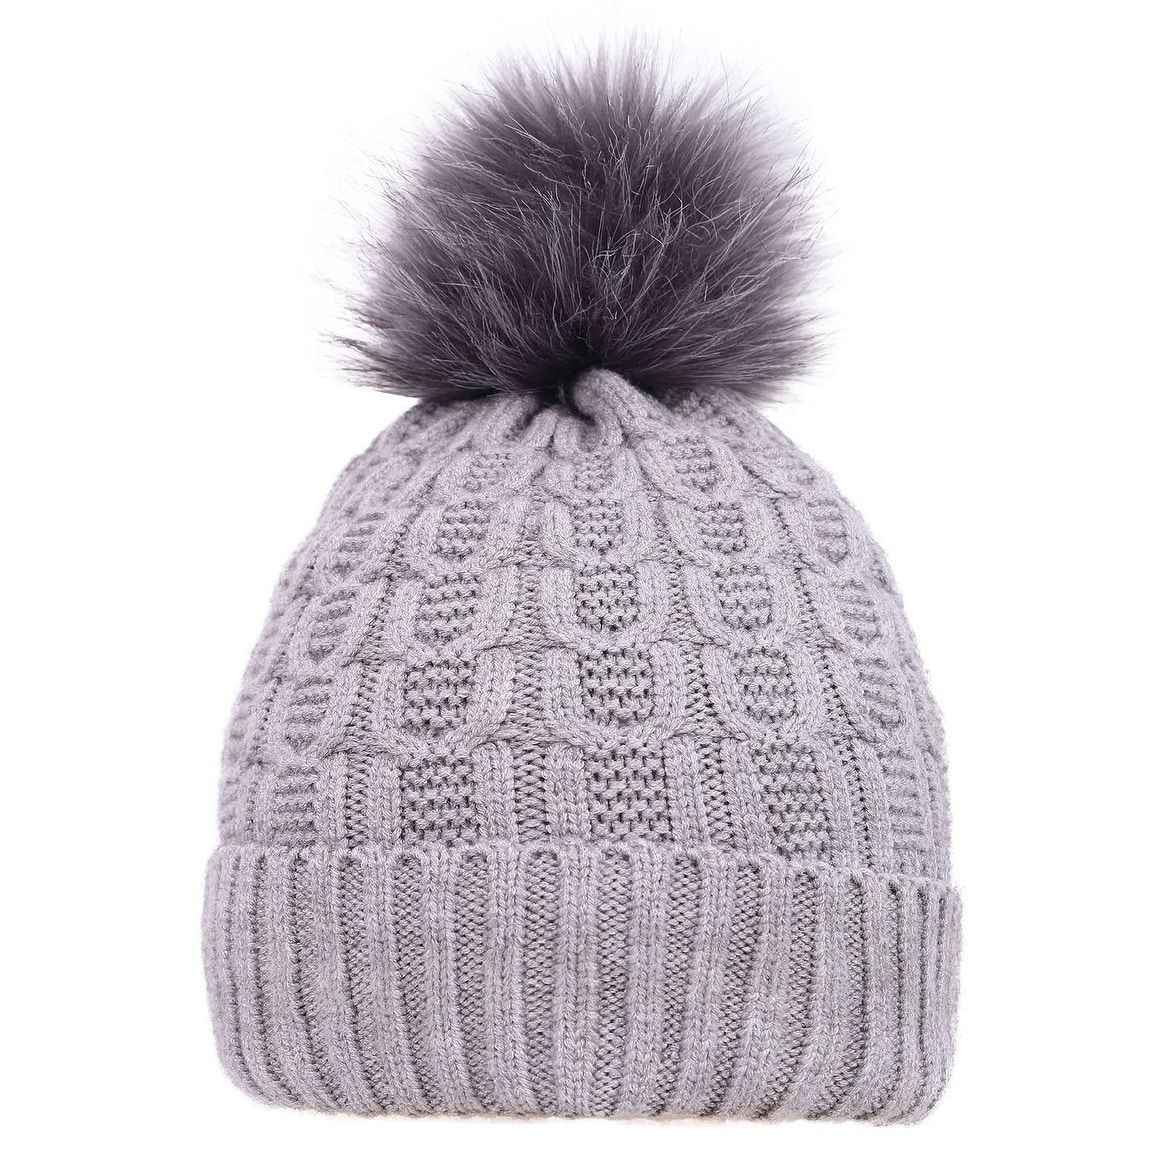 aeb1a3663 Arctic Paw Sherpa Lined Knit Beanie with Faux Fur Pompom (grey with ...